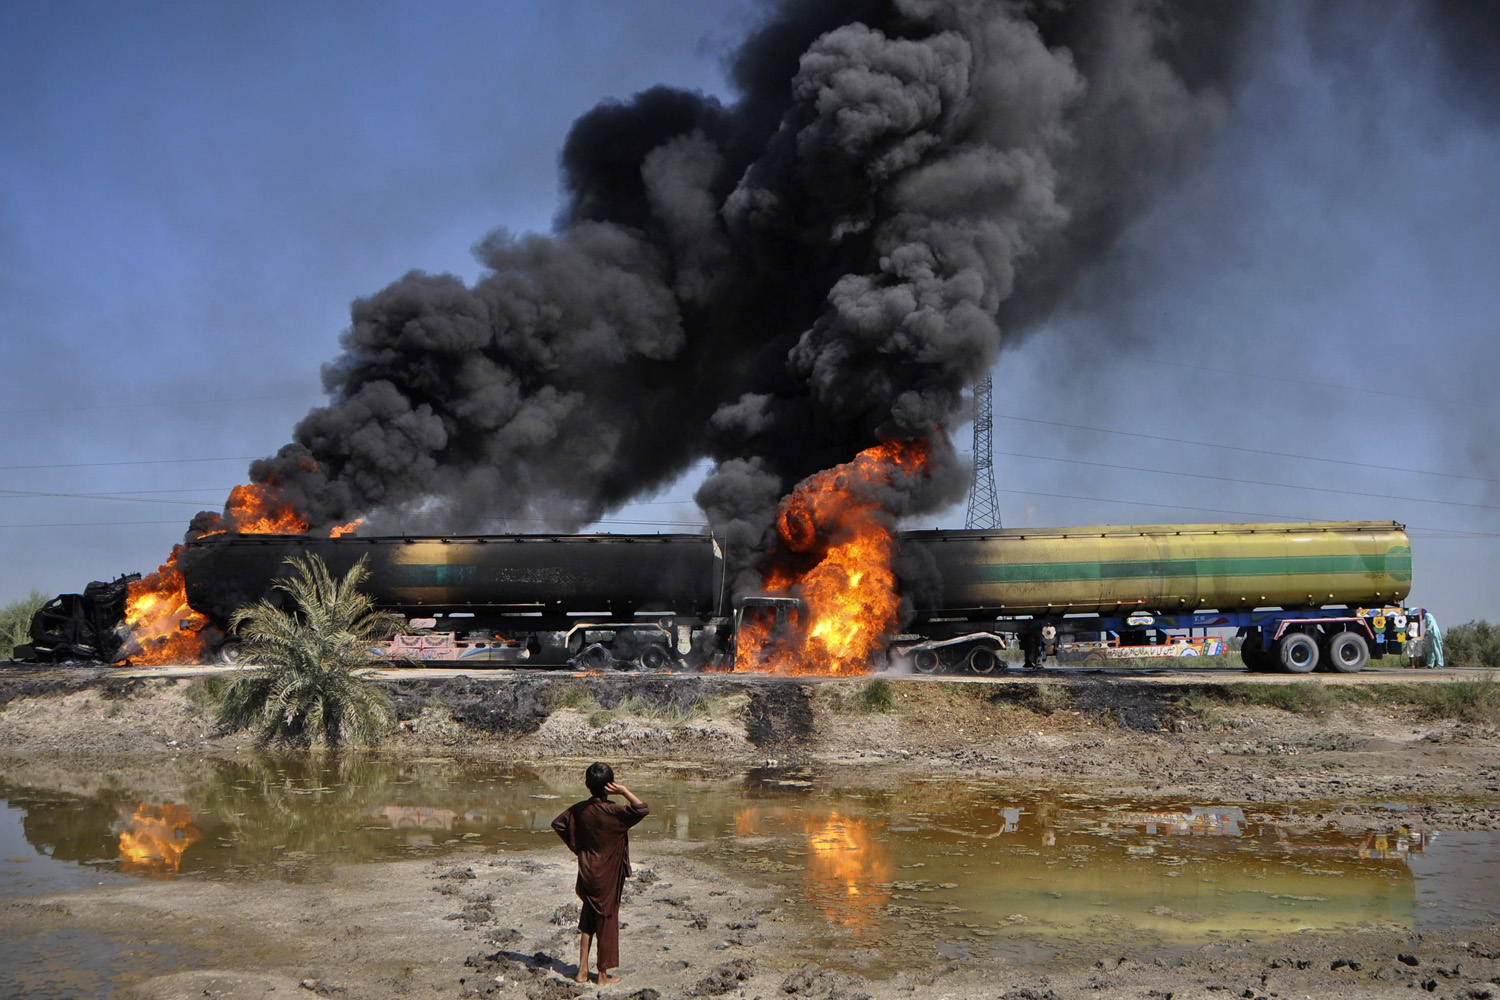 October 13, 2011. A boy looks at a plume of smoke rising from fuel trucks after they were attacked by unidentified gunmen on a highway near Shikarpur, about 39 km (24 miles) from Sukkur in Pakistan's Sindh province.